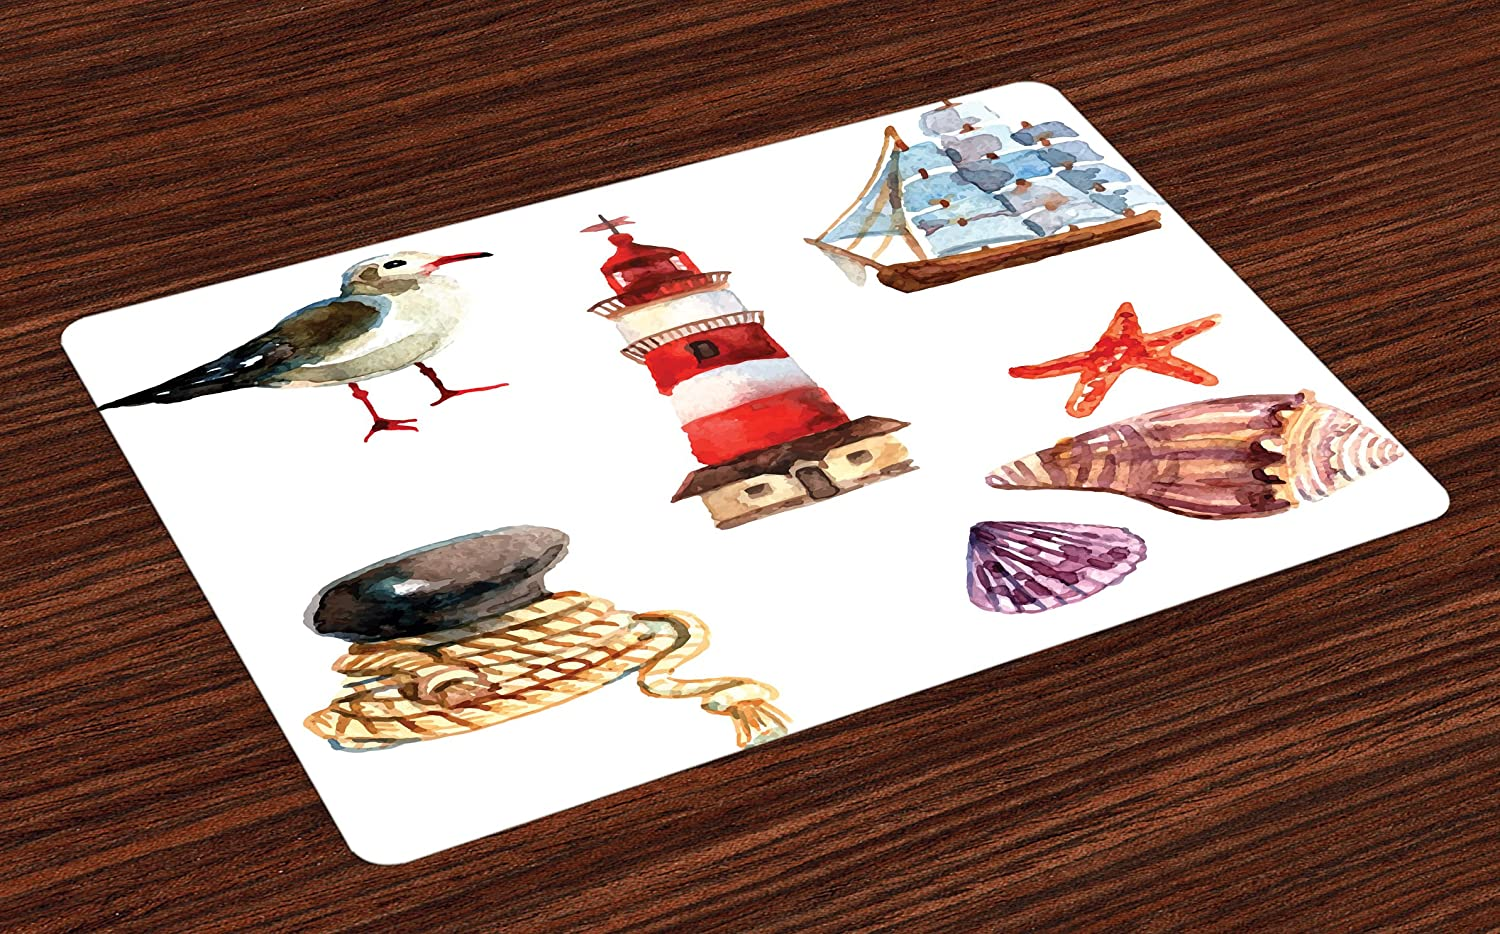 Ambesonne Nautical Place Mats Set of 4, Nautical Theme Elements Seagull Boat Lighthouse Shell Starfish Island Watercolor, Washable Fabric Placemats for Dining Room Kitchen Table Decor, Multicolor